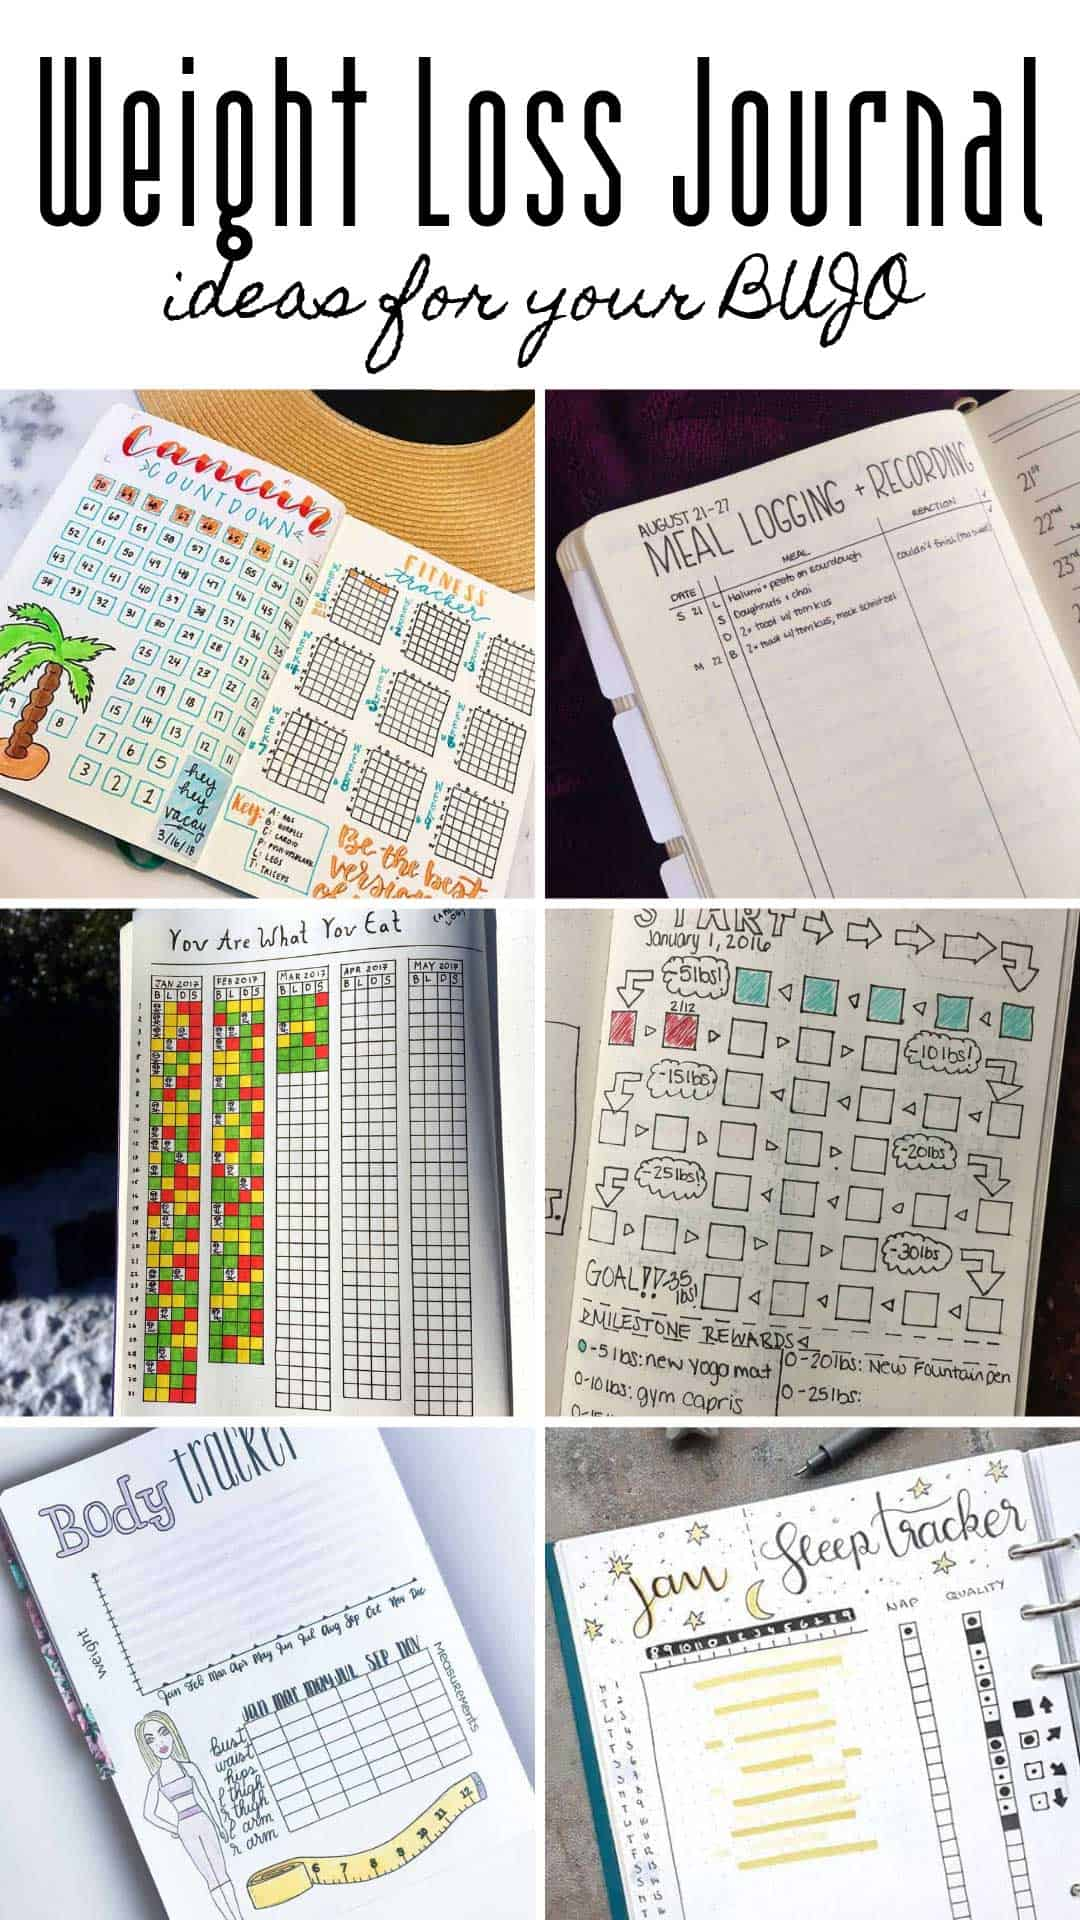 These bullet journal weight loss trackers and ideas are just what you need to slim down and get fit this summer #weightloss #bulletjournal